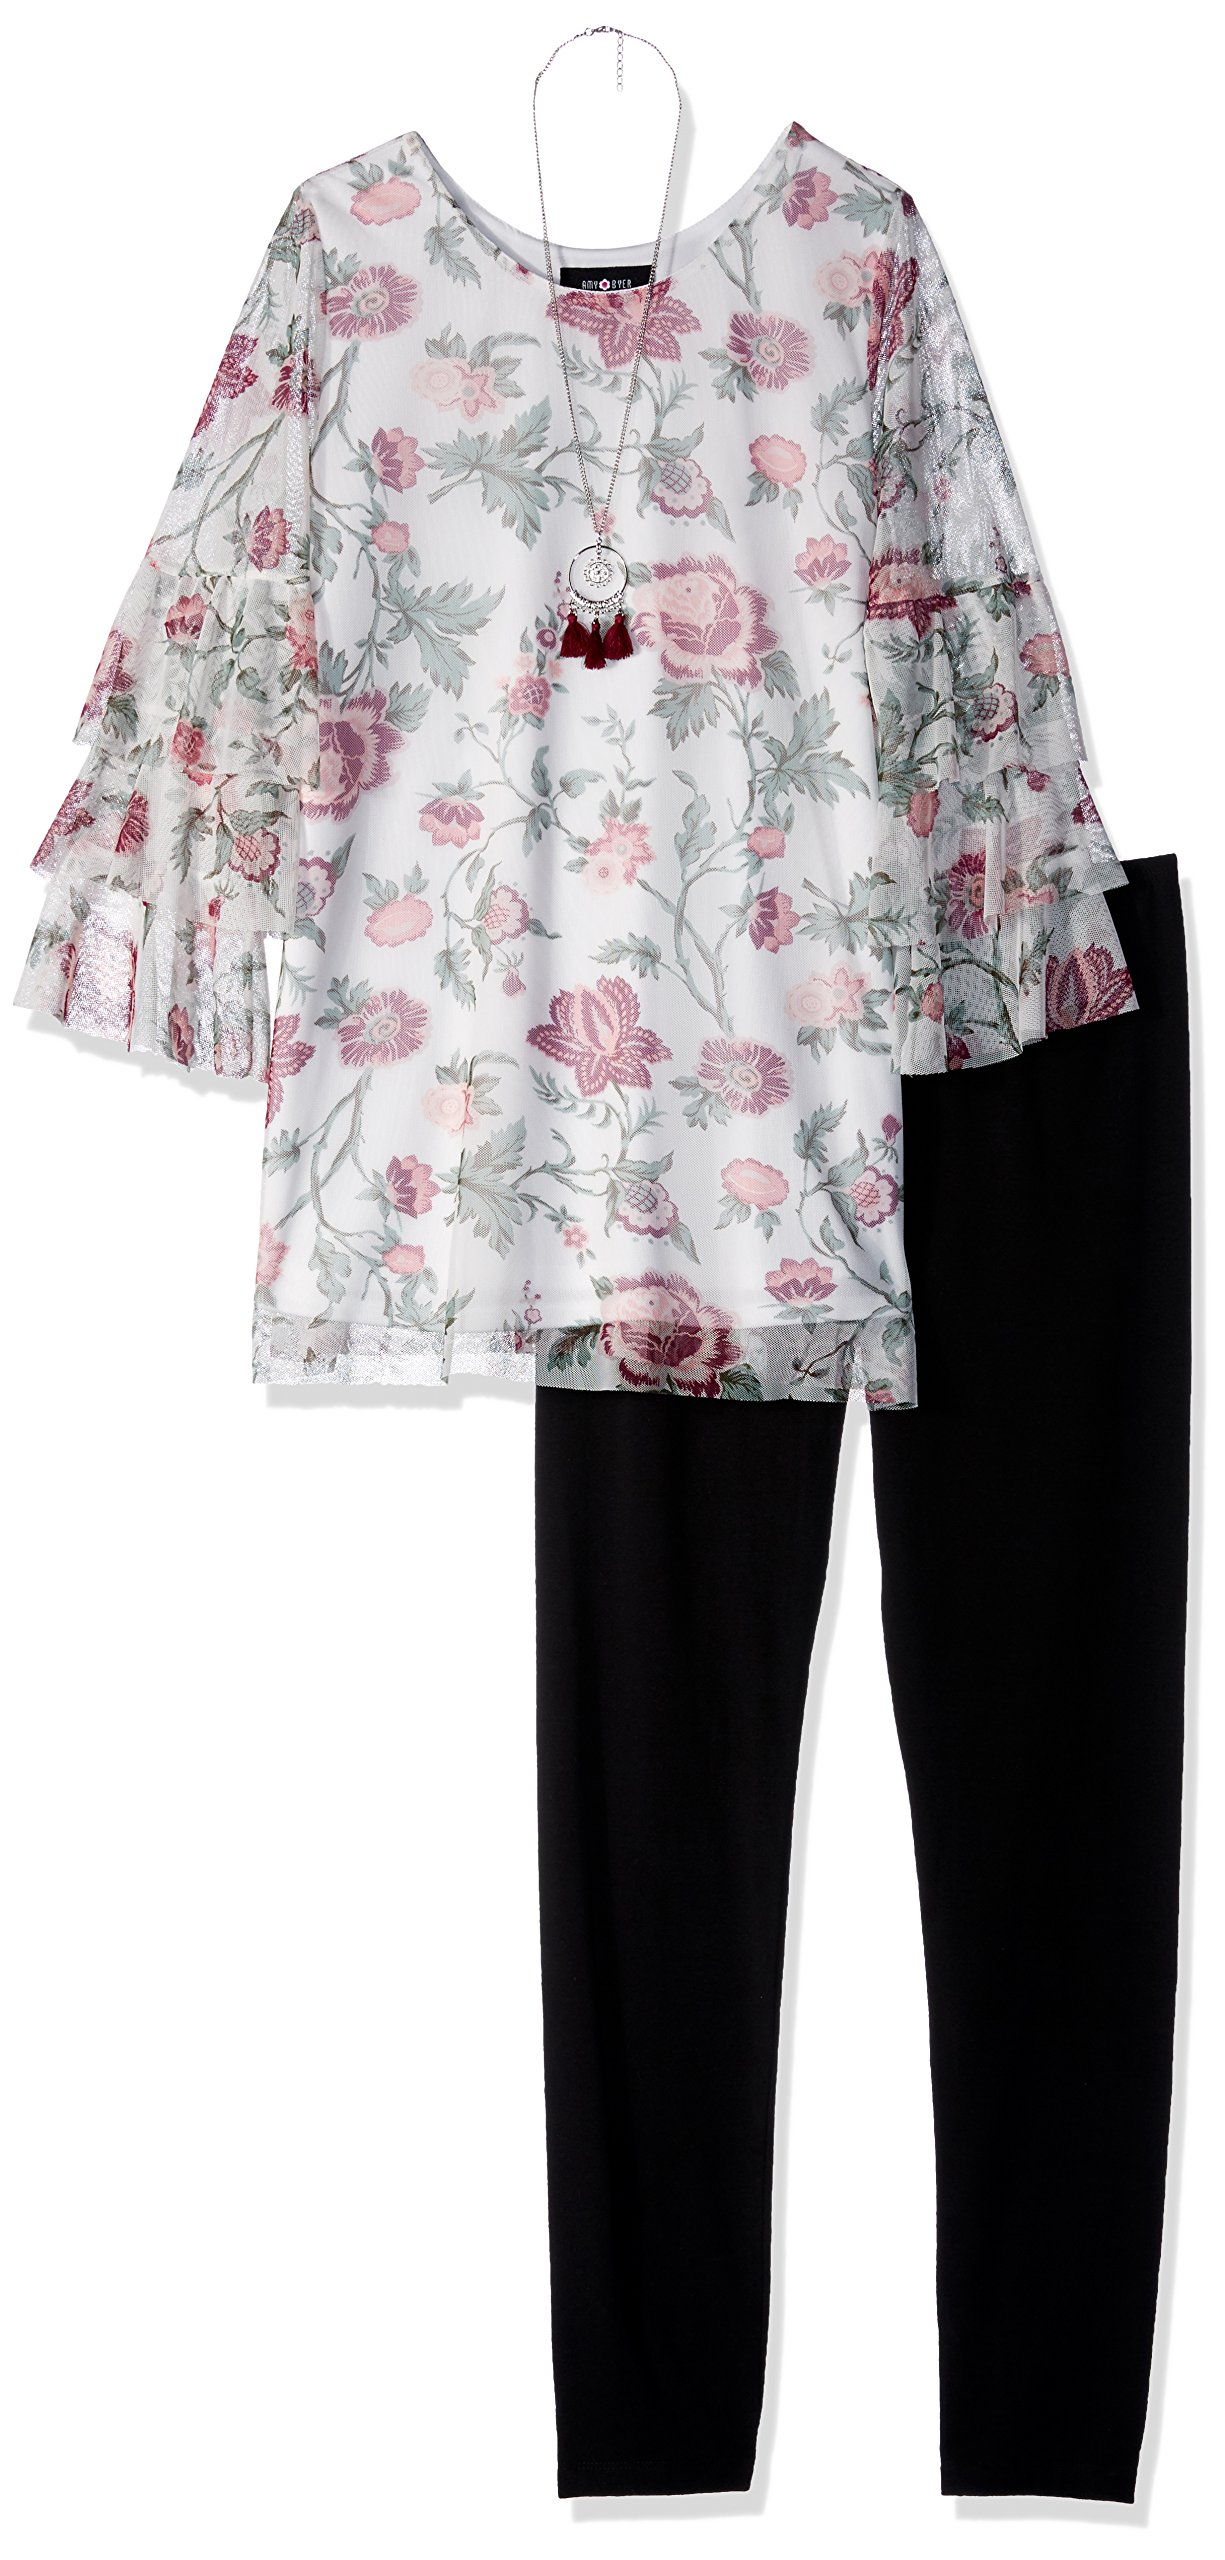 Amy Byer Big Girls' Long Sleeve Top and Legging Outfit Set, Swirling Floral/Black, M